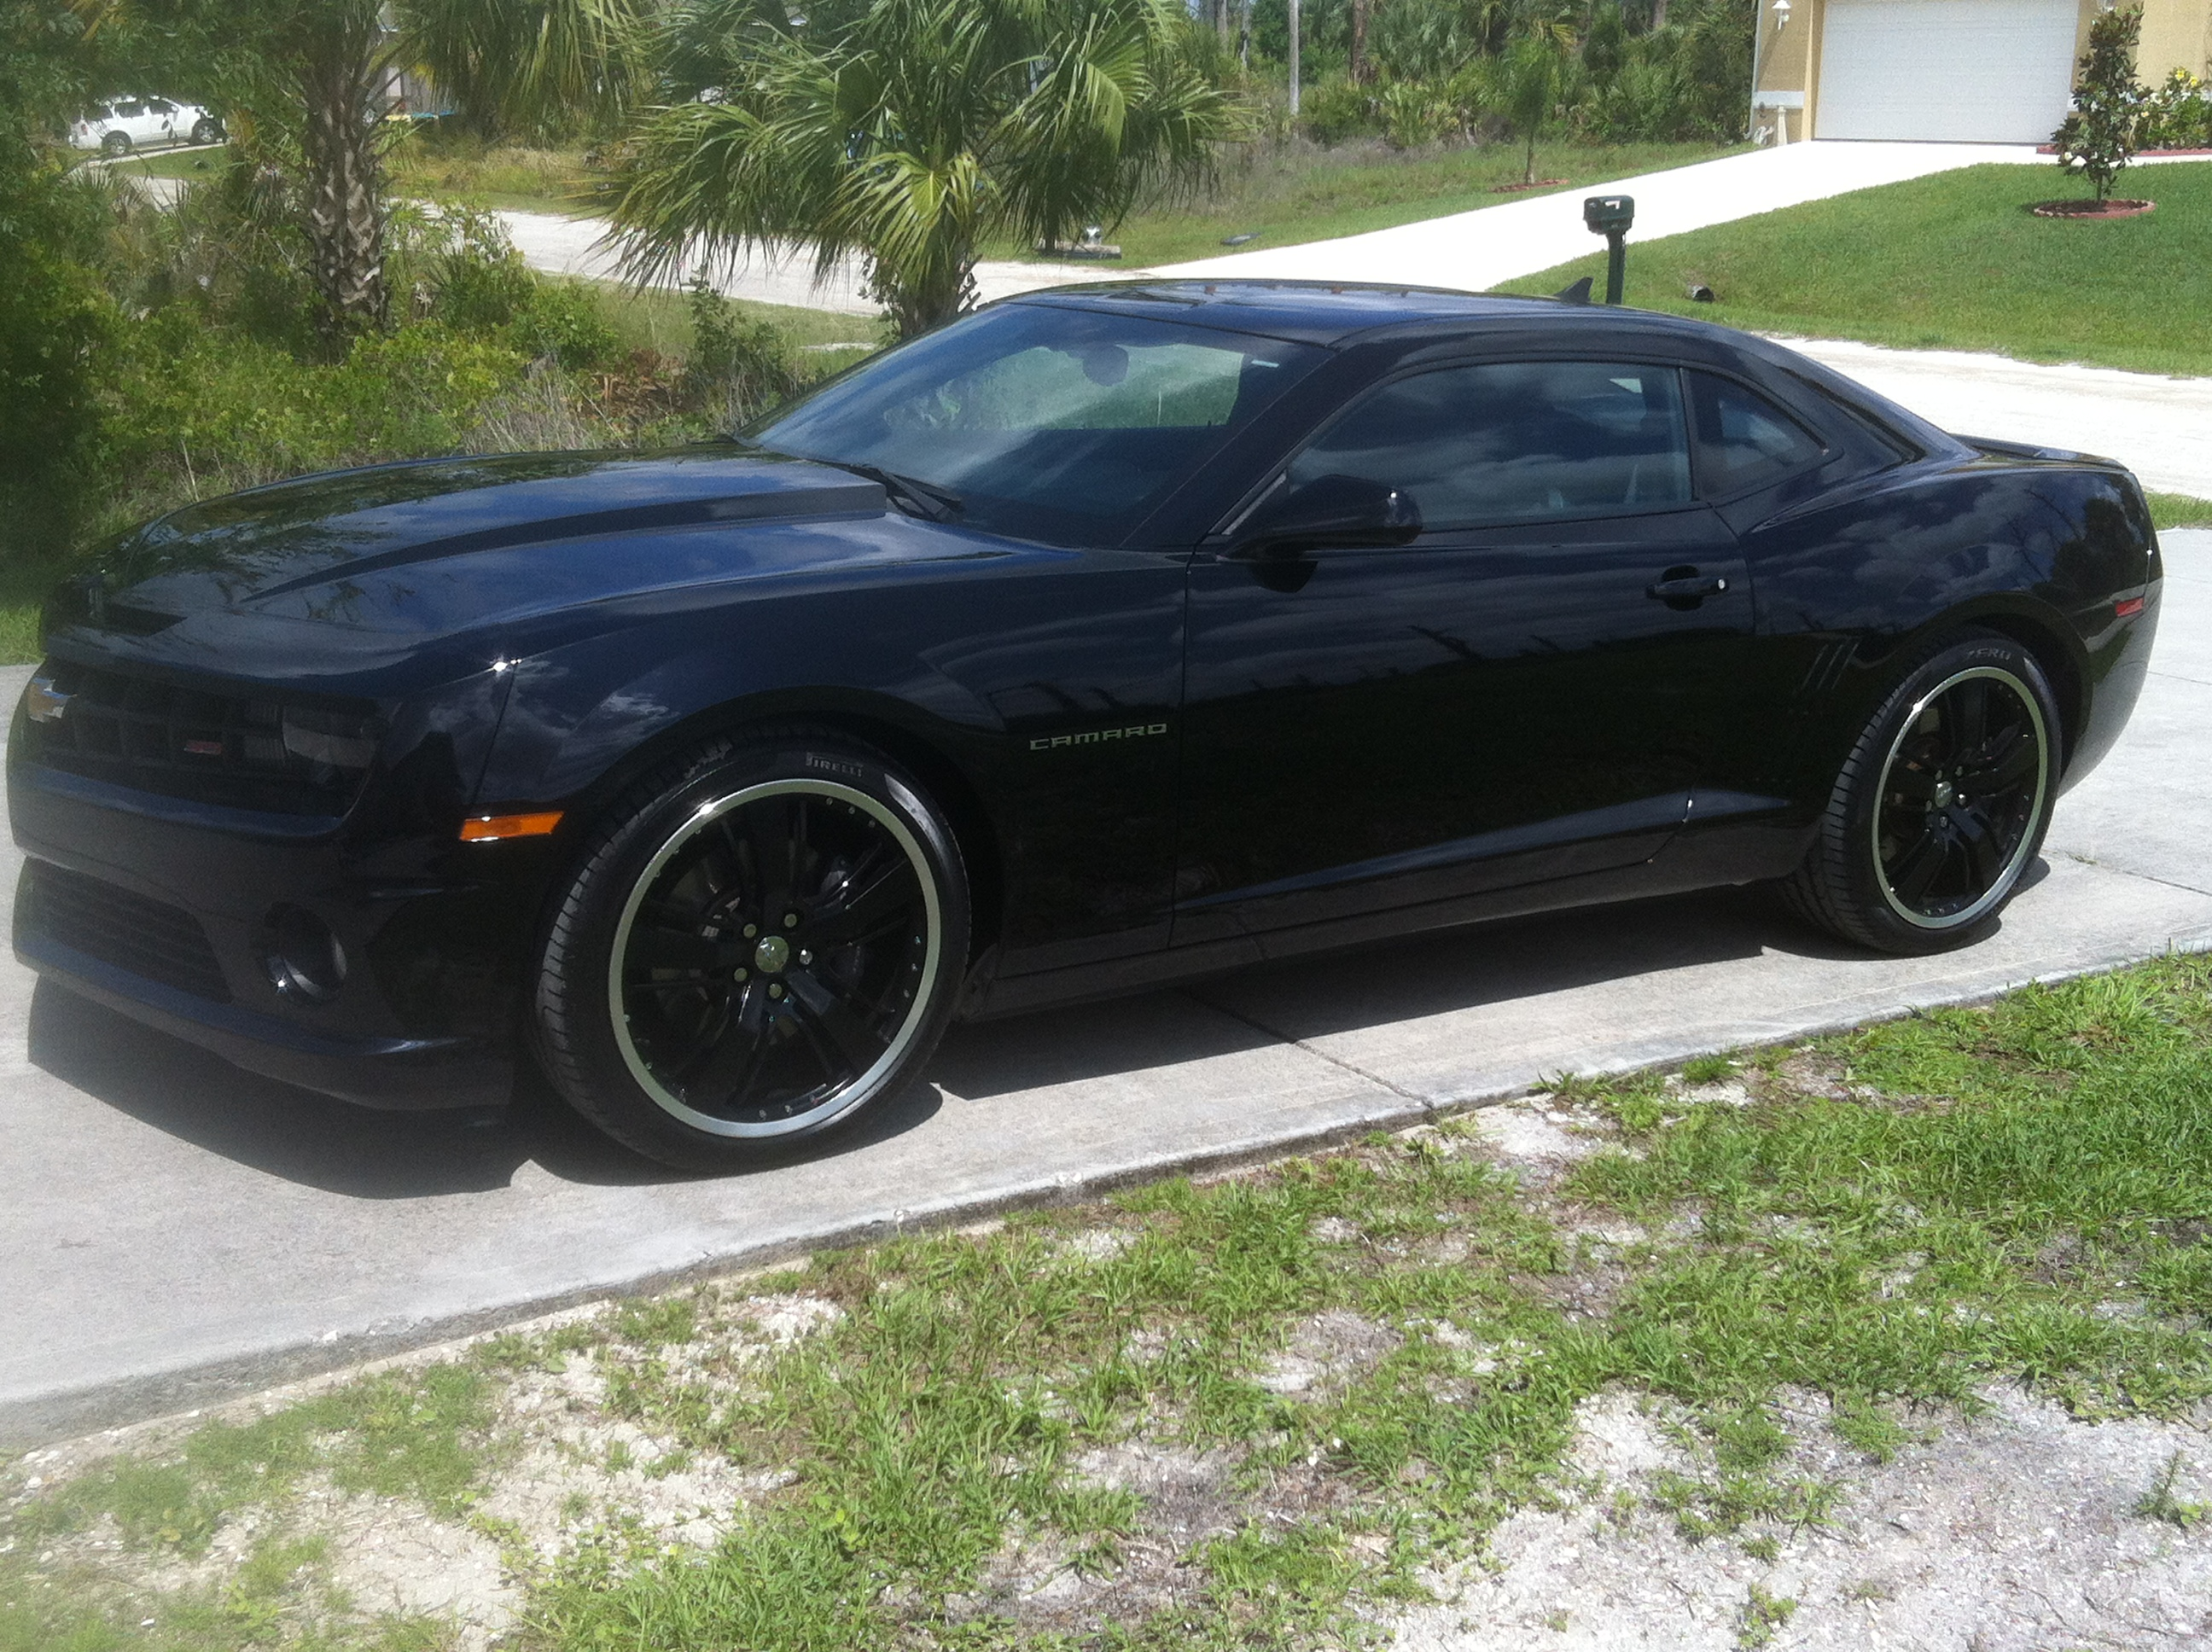 Before And After Photos Of My 2011 Camaro Ss Upgrades